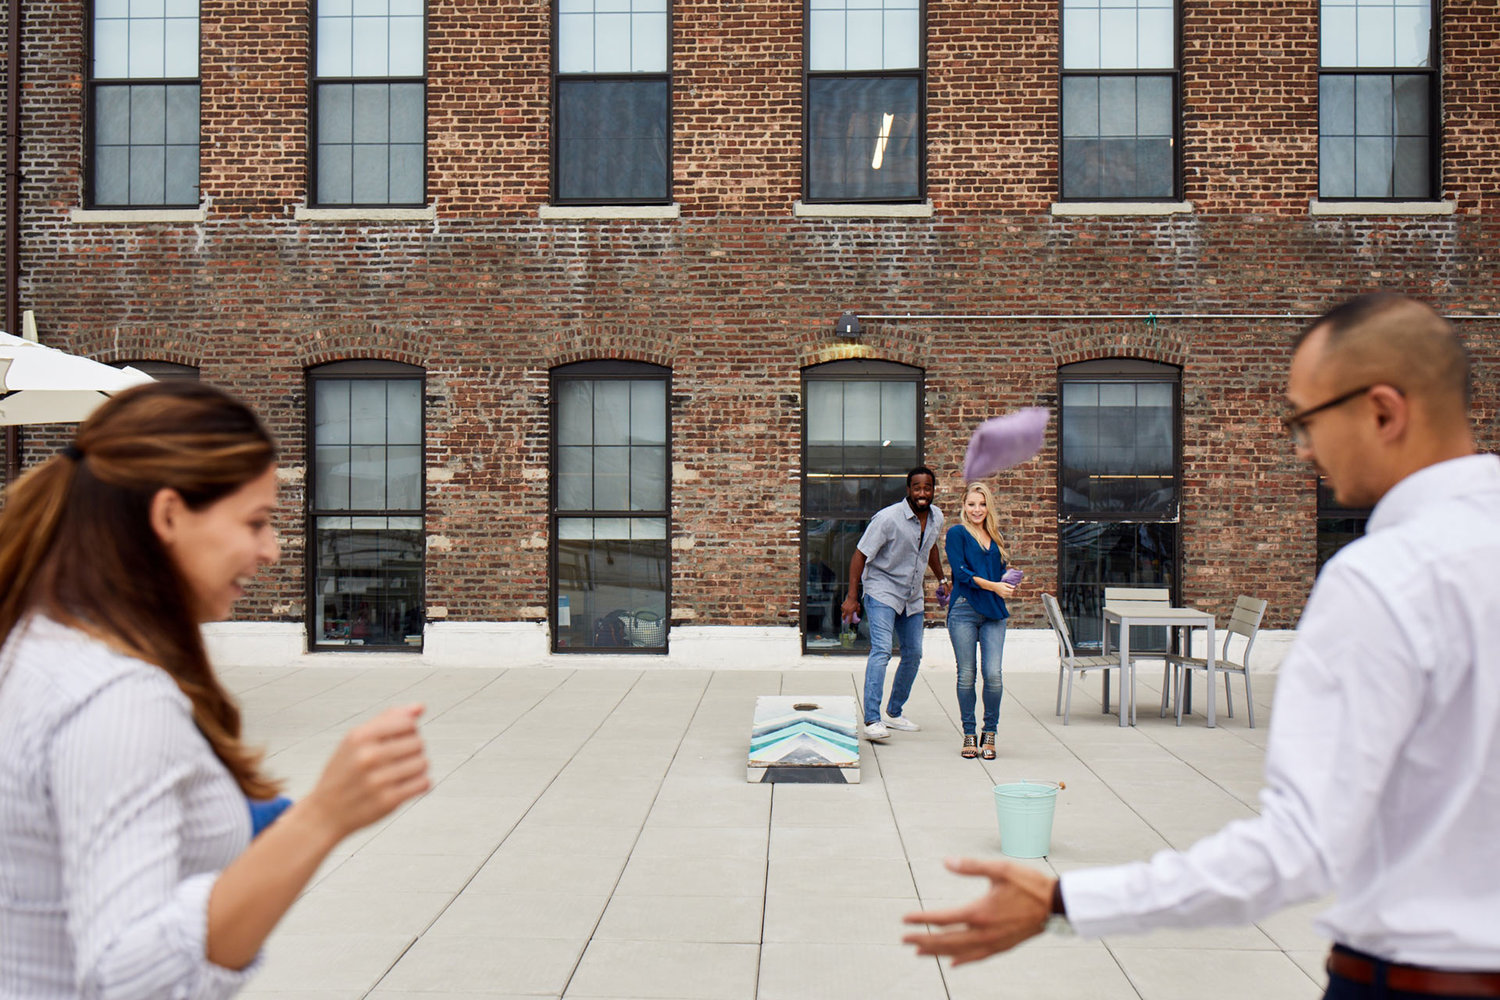 Rooftop socialization area for employees